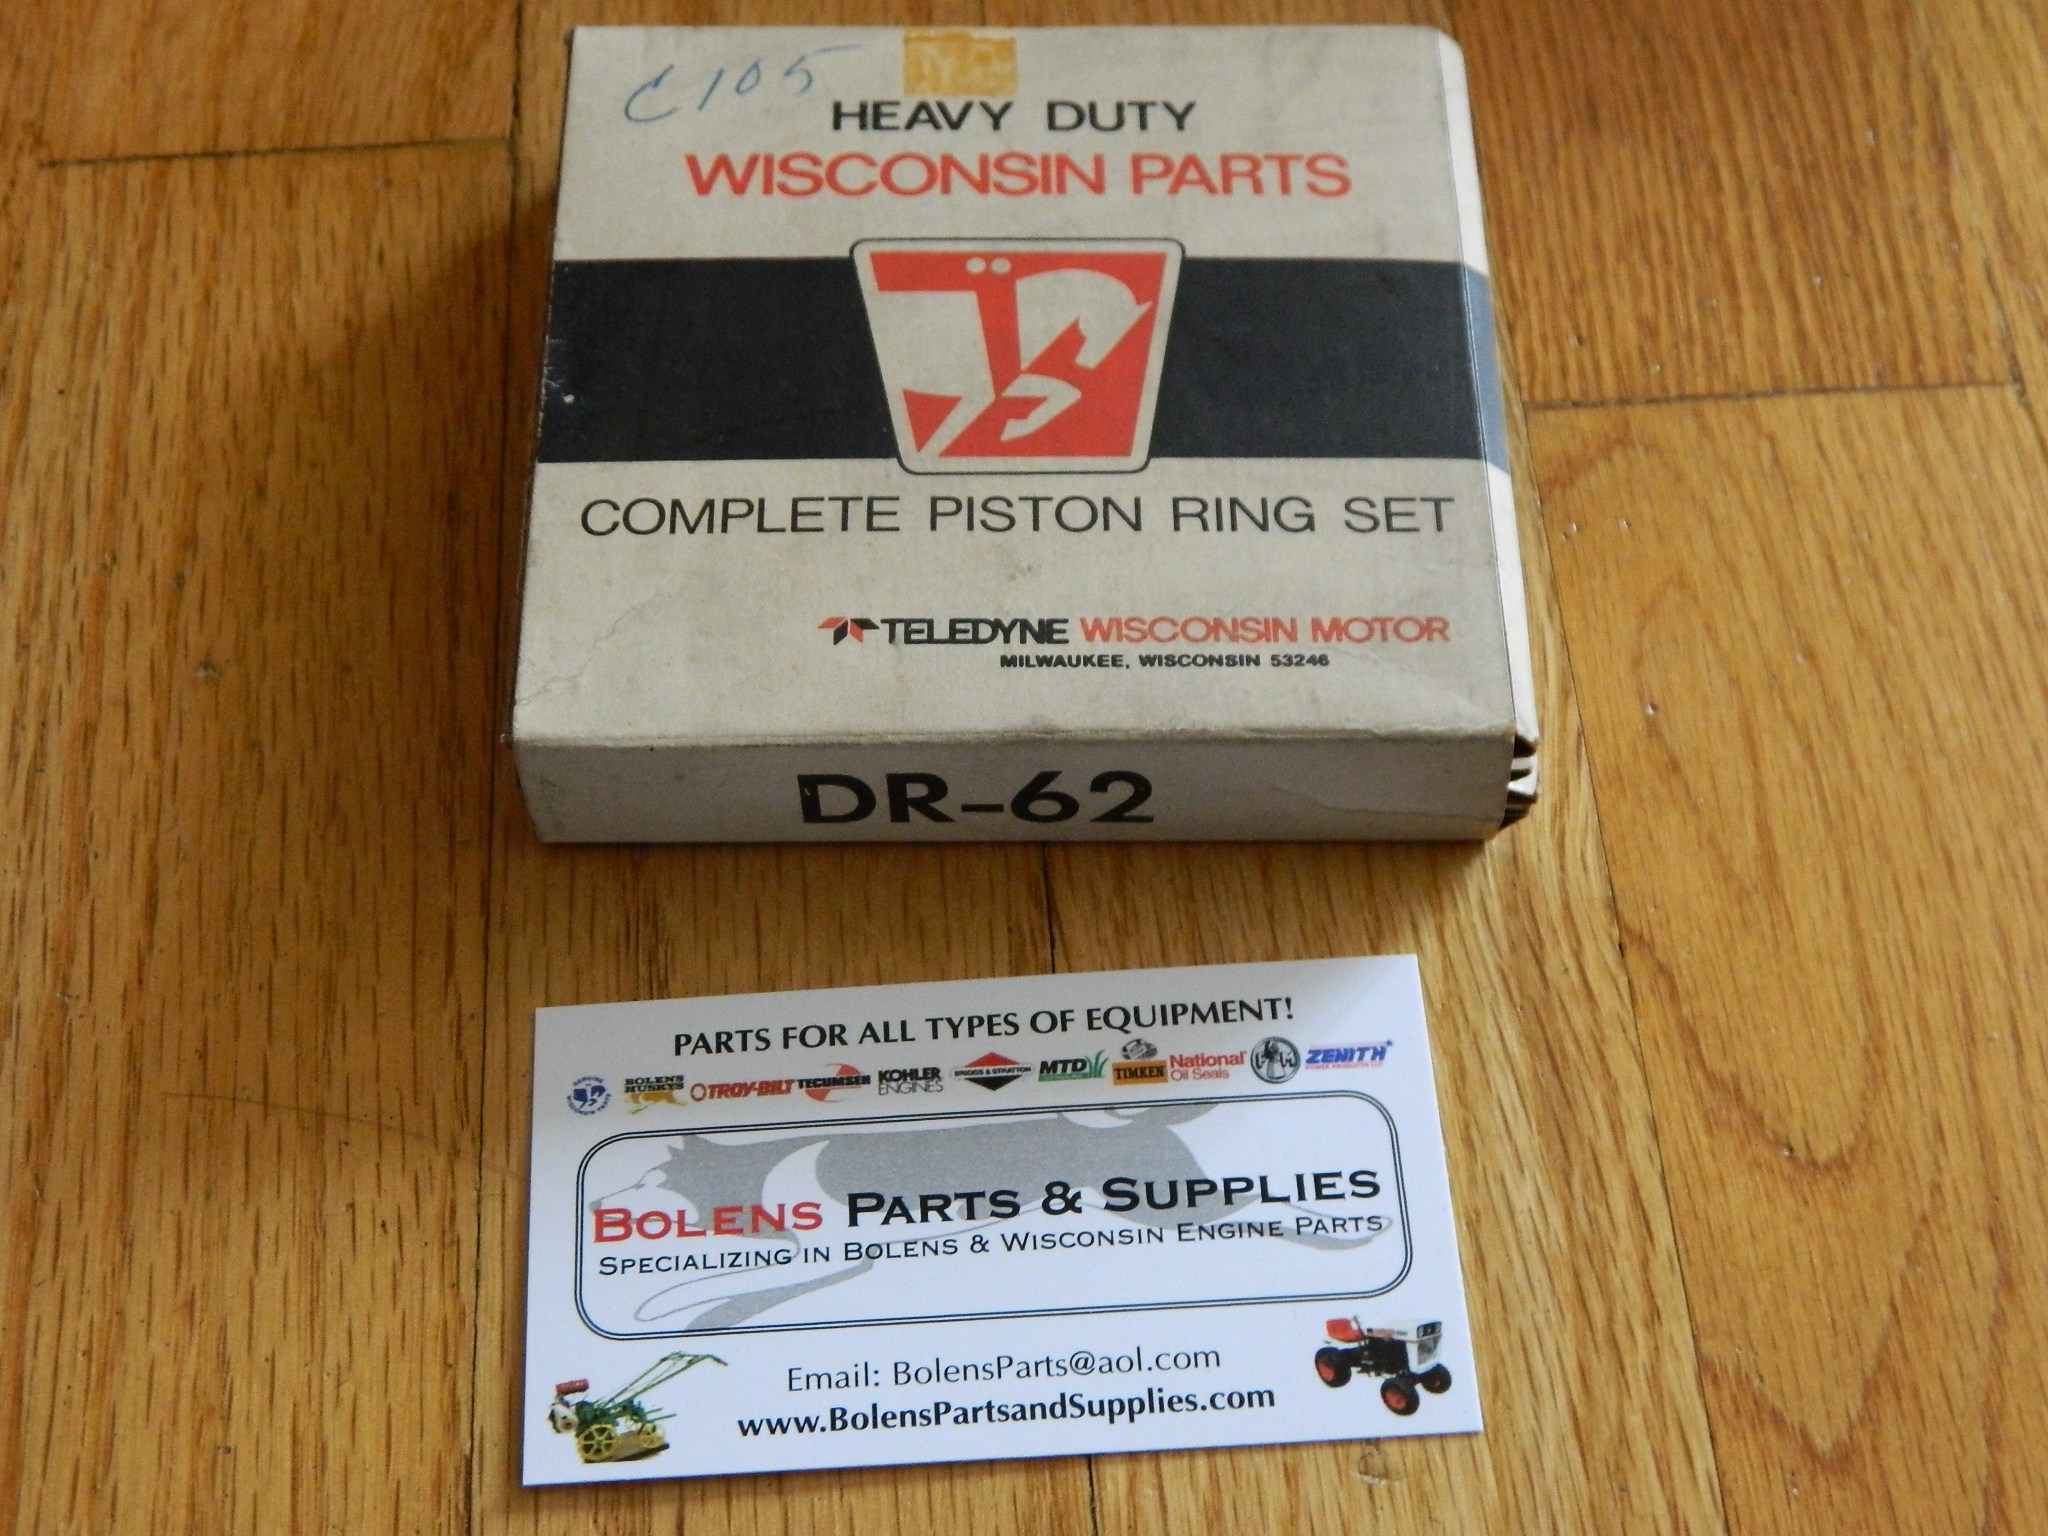 Bolens / Wisconsin Engine Piston Ring set STD DR62 TRA12D Bolens 1256 DR-62